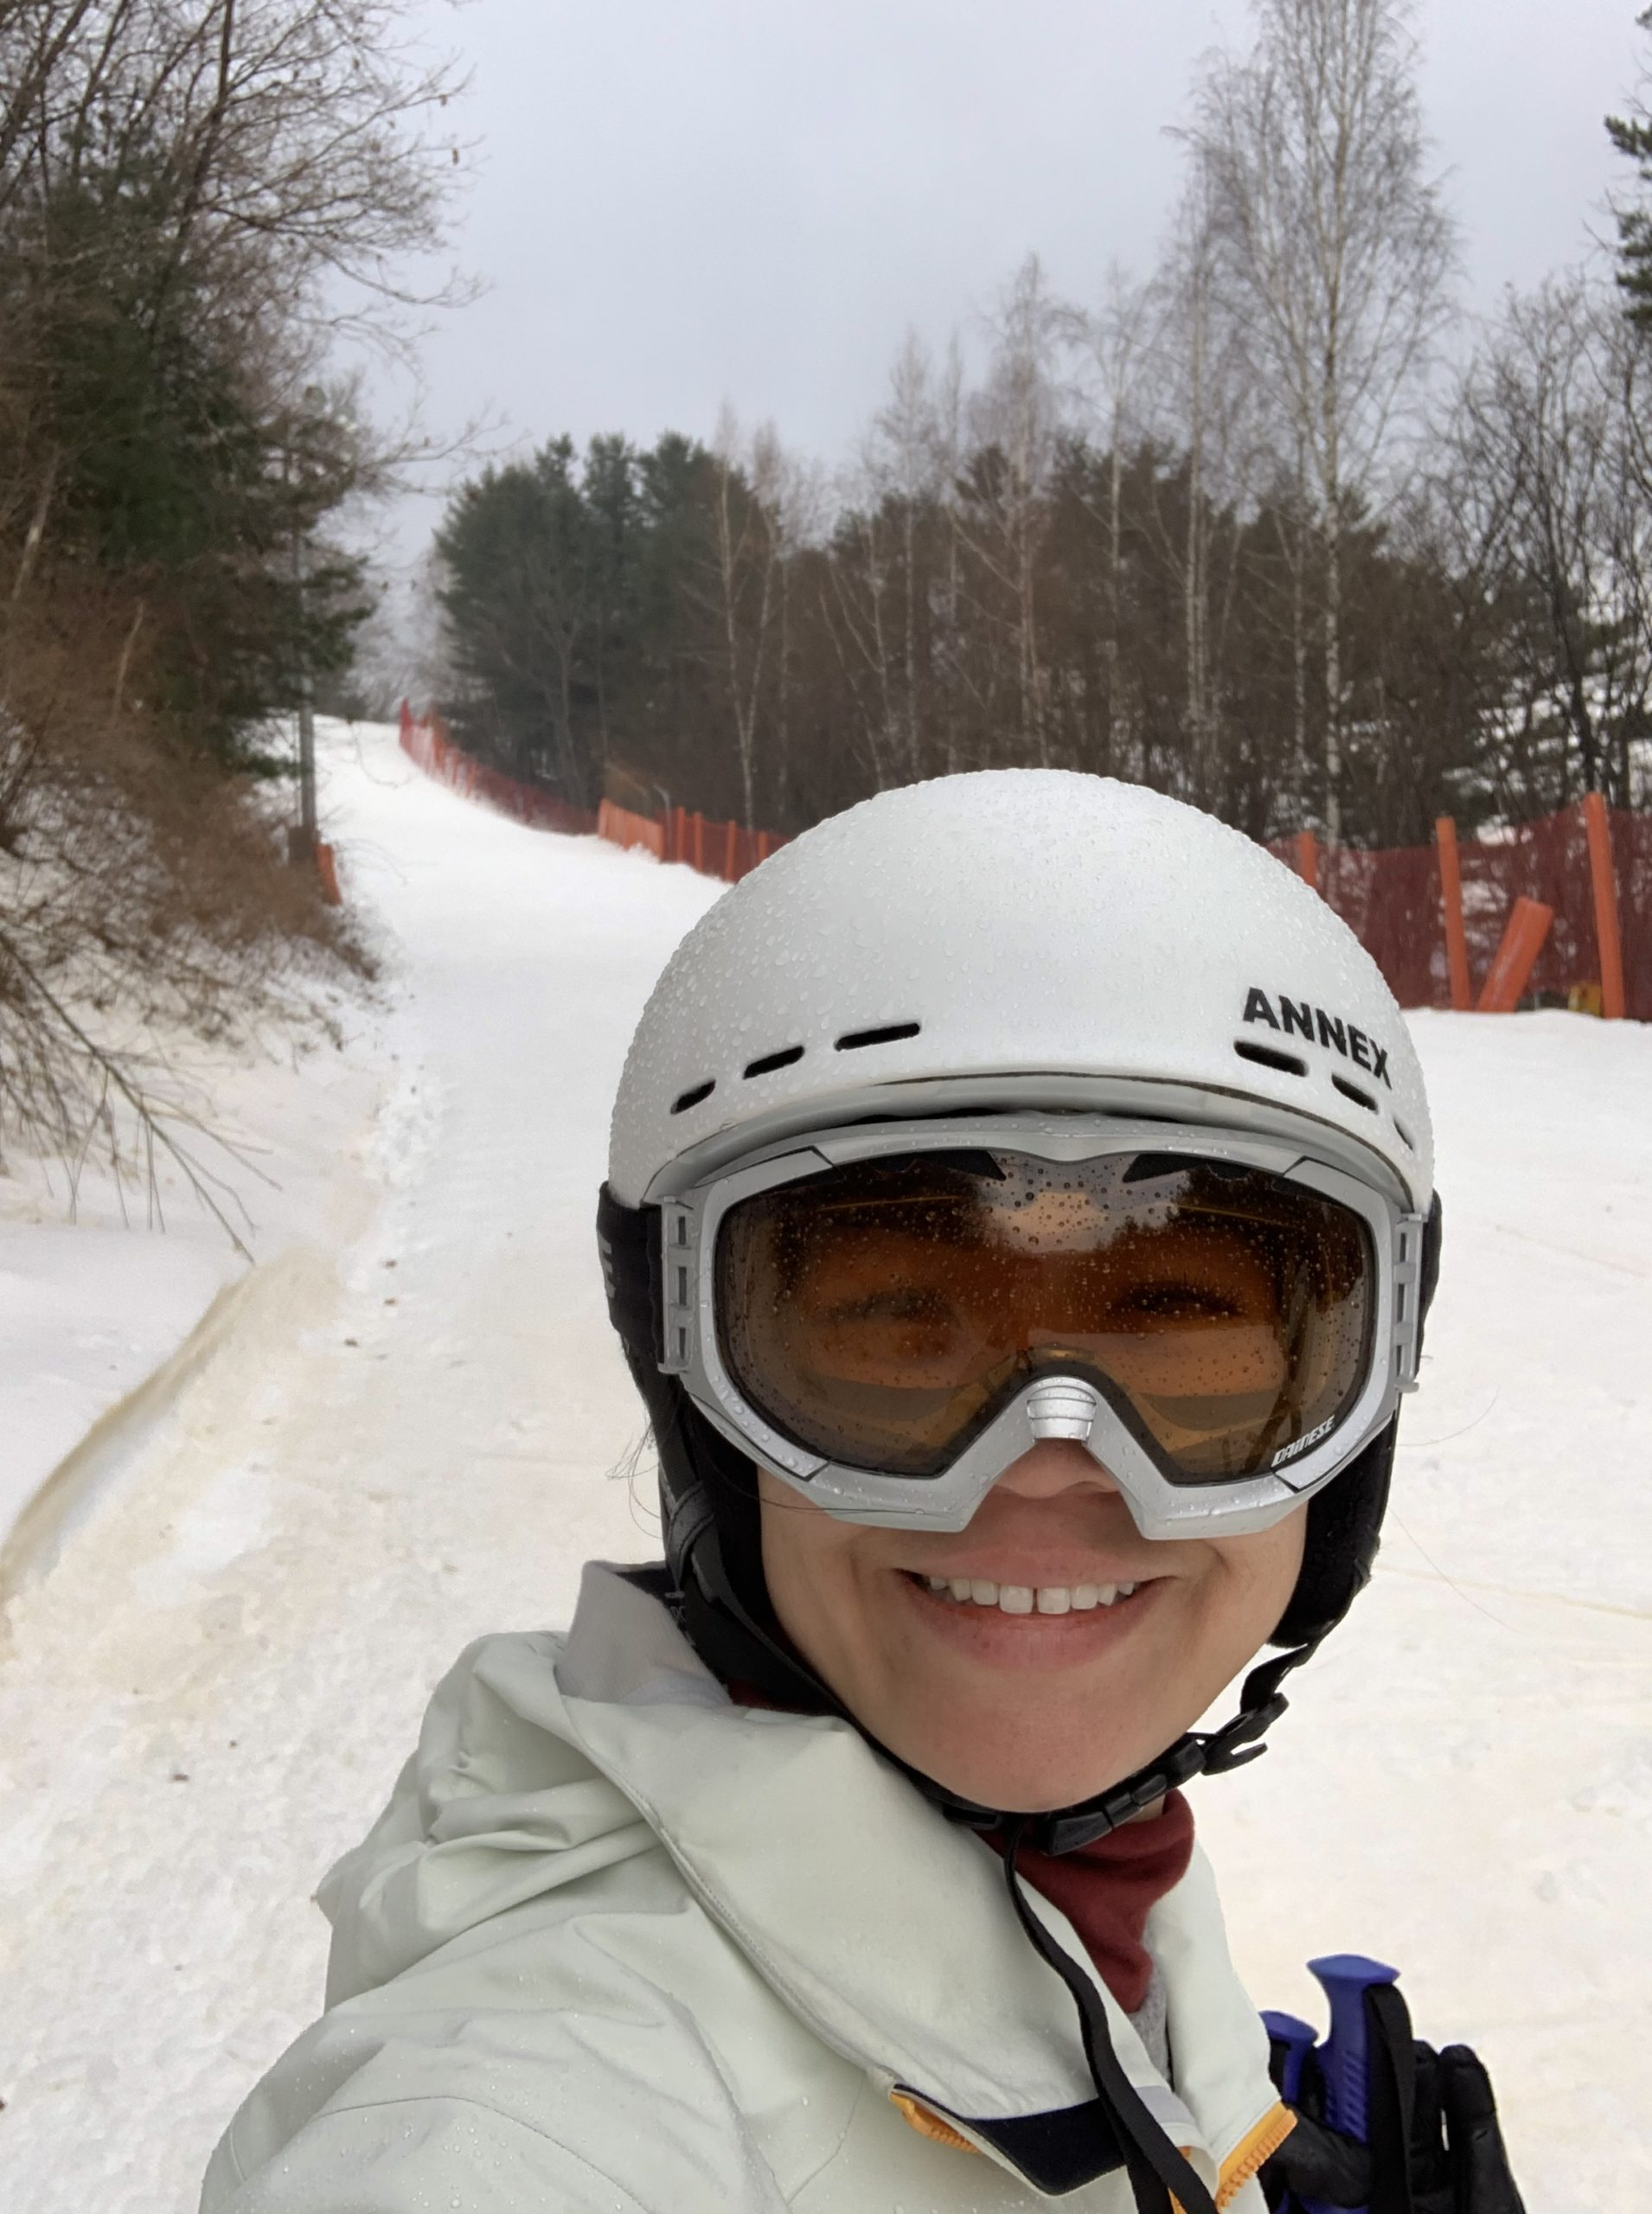 Selfie while skiing in PyeongChang